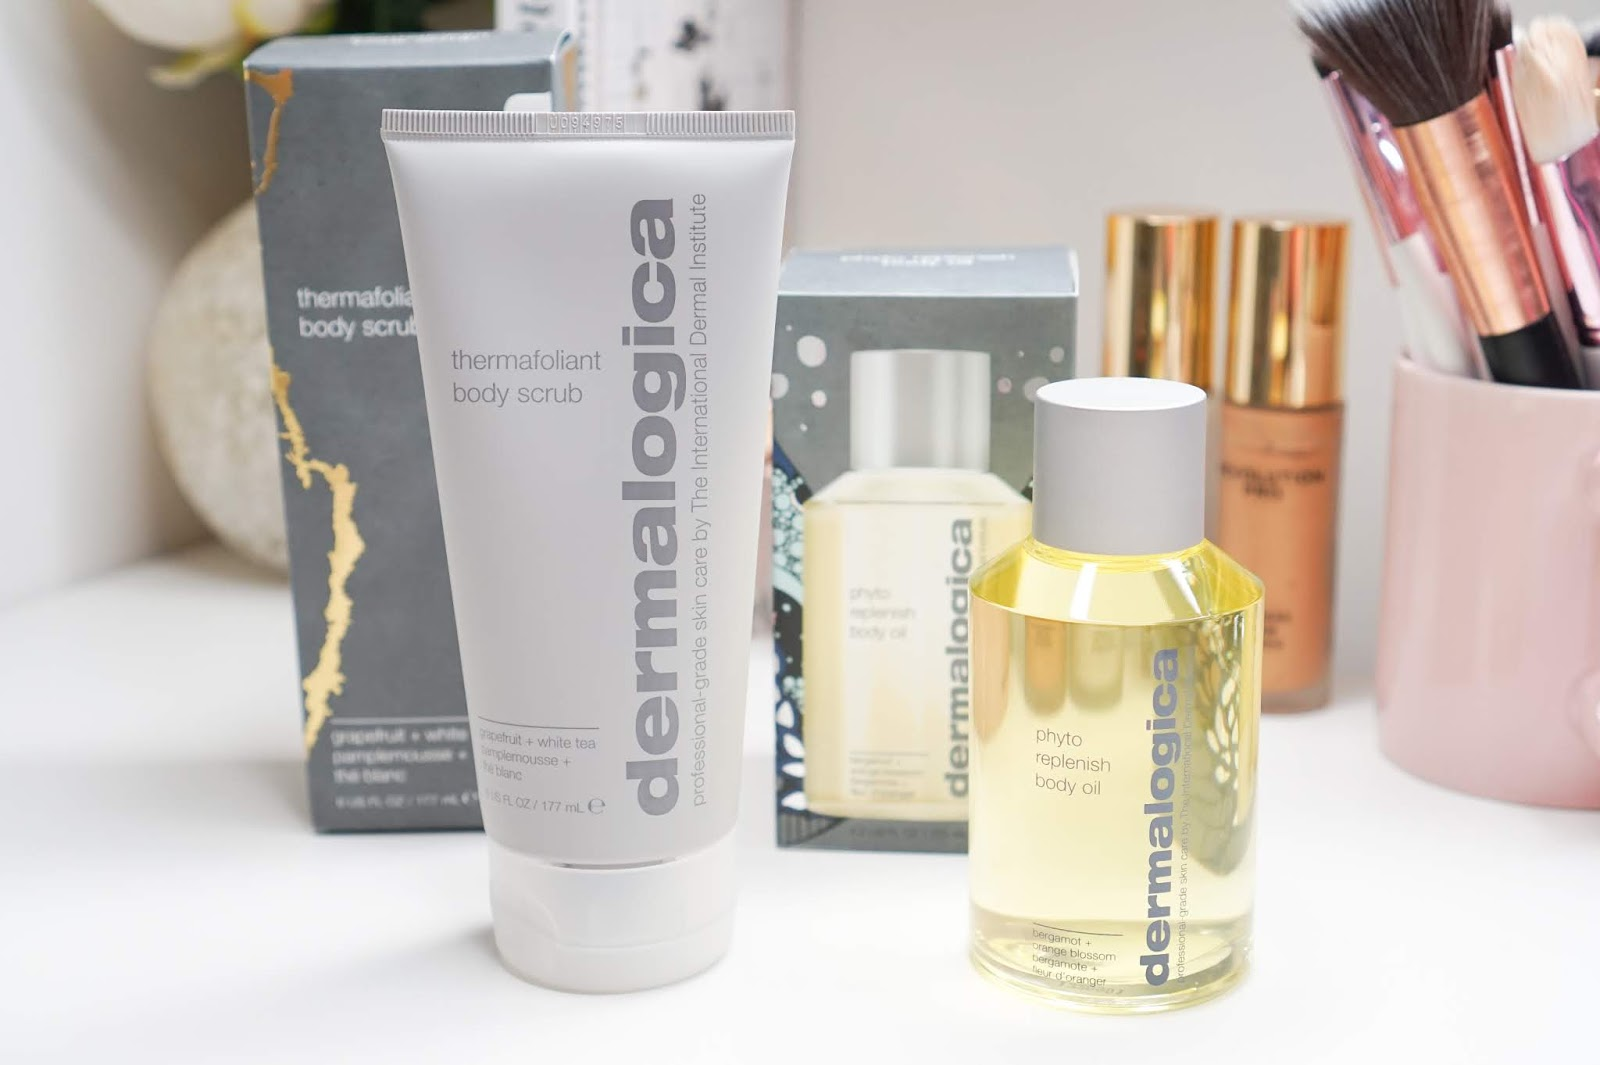 Dermalogica_Thermafoliant_Body_Scrub_and_Phyto_Replenish_Body_Oil